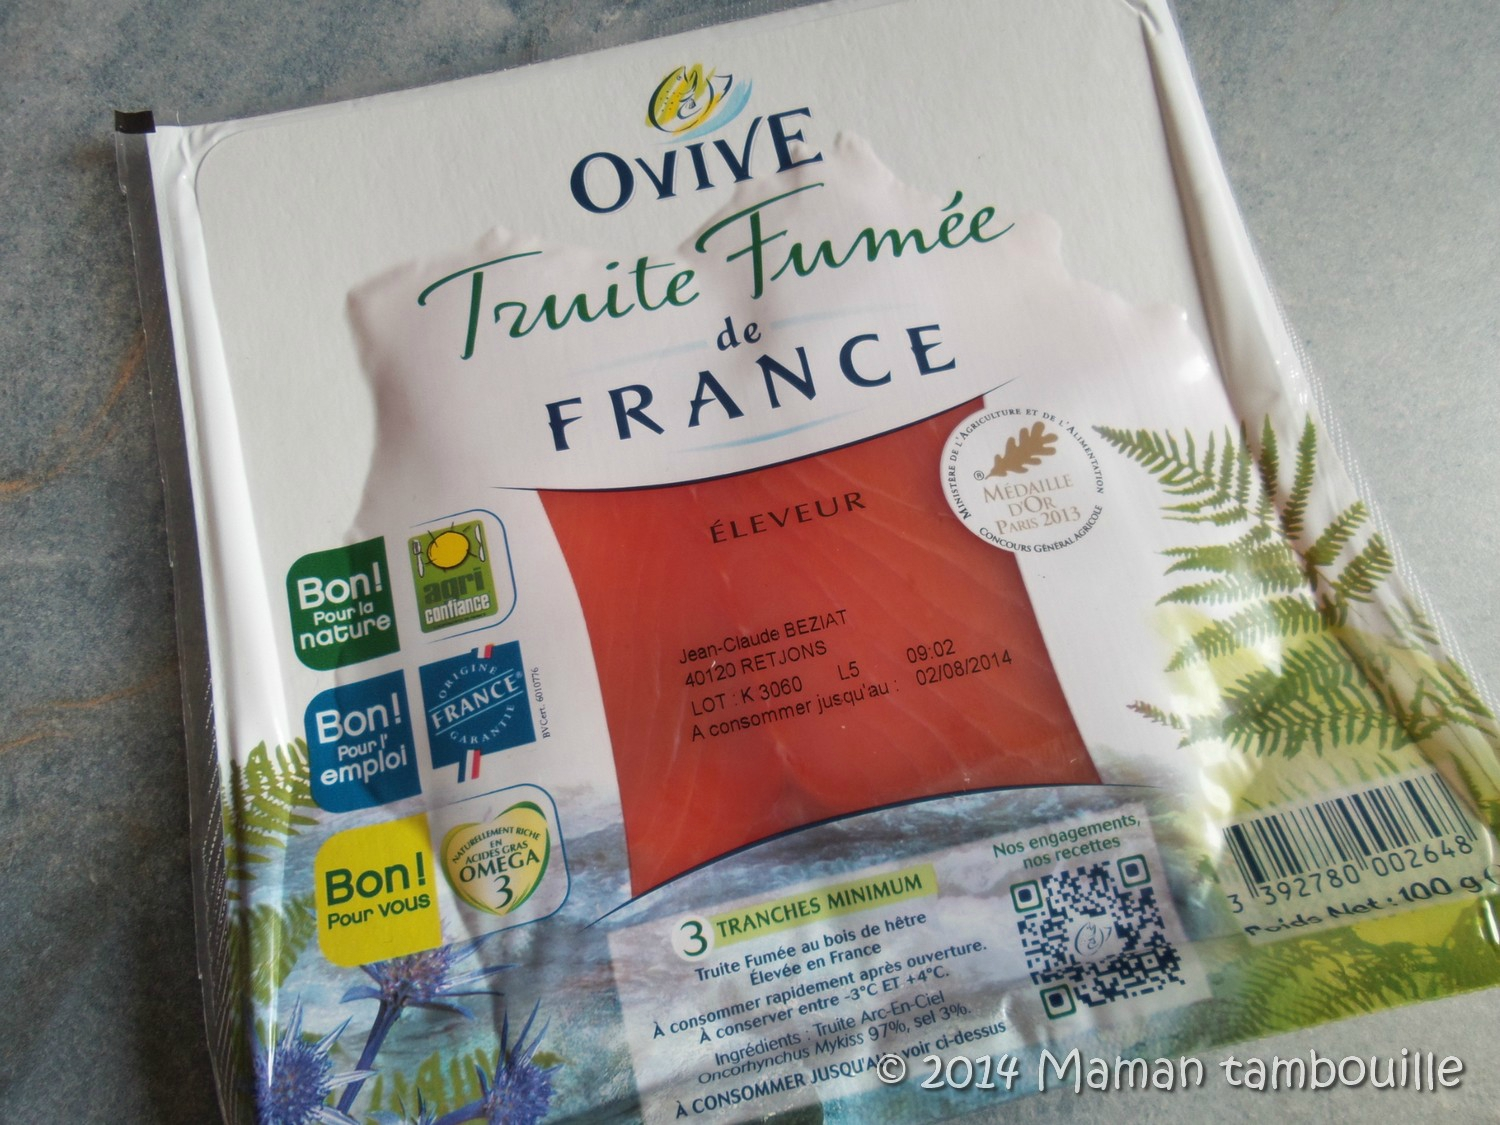 You are currently viewing Nouveau partenaire Ovive